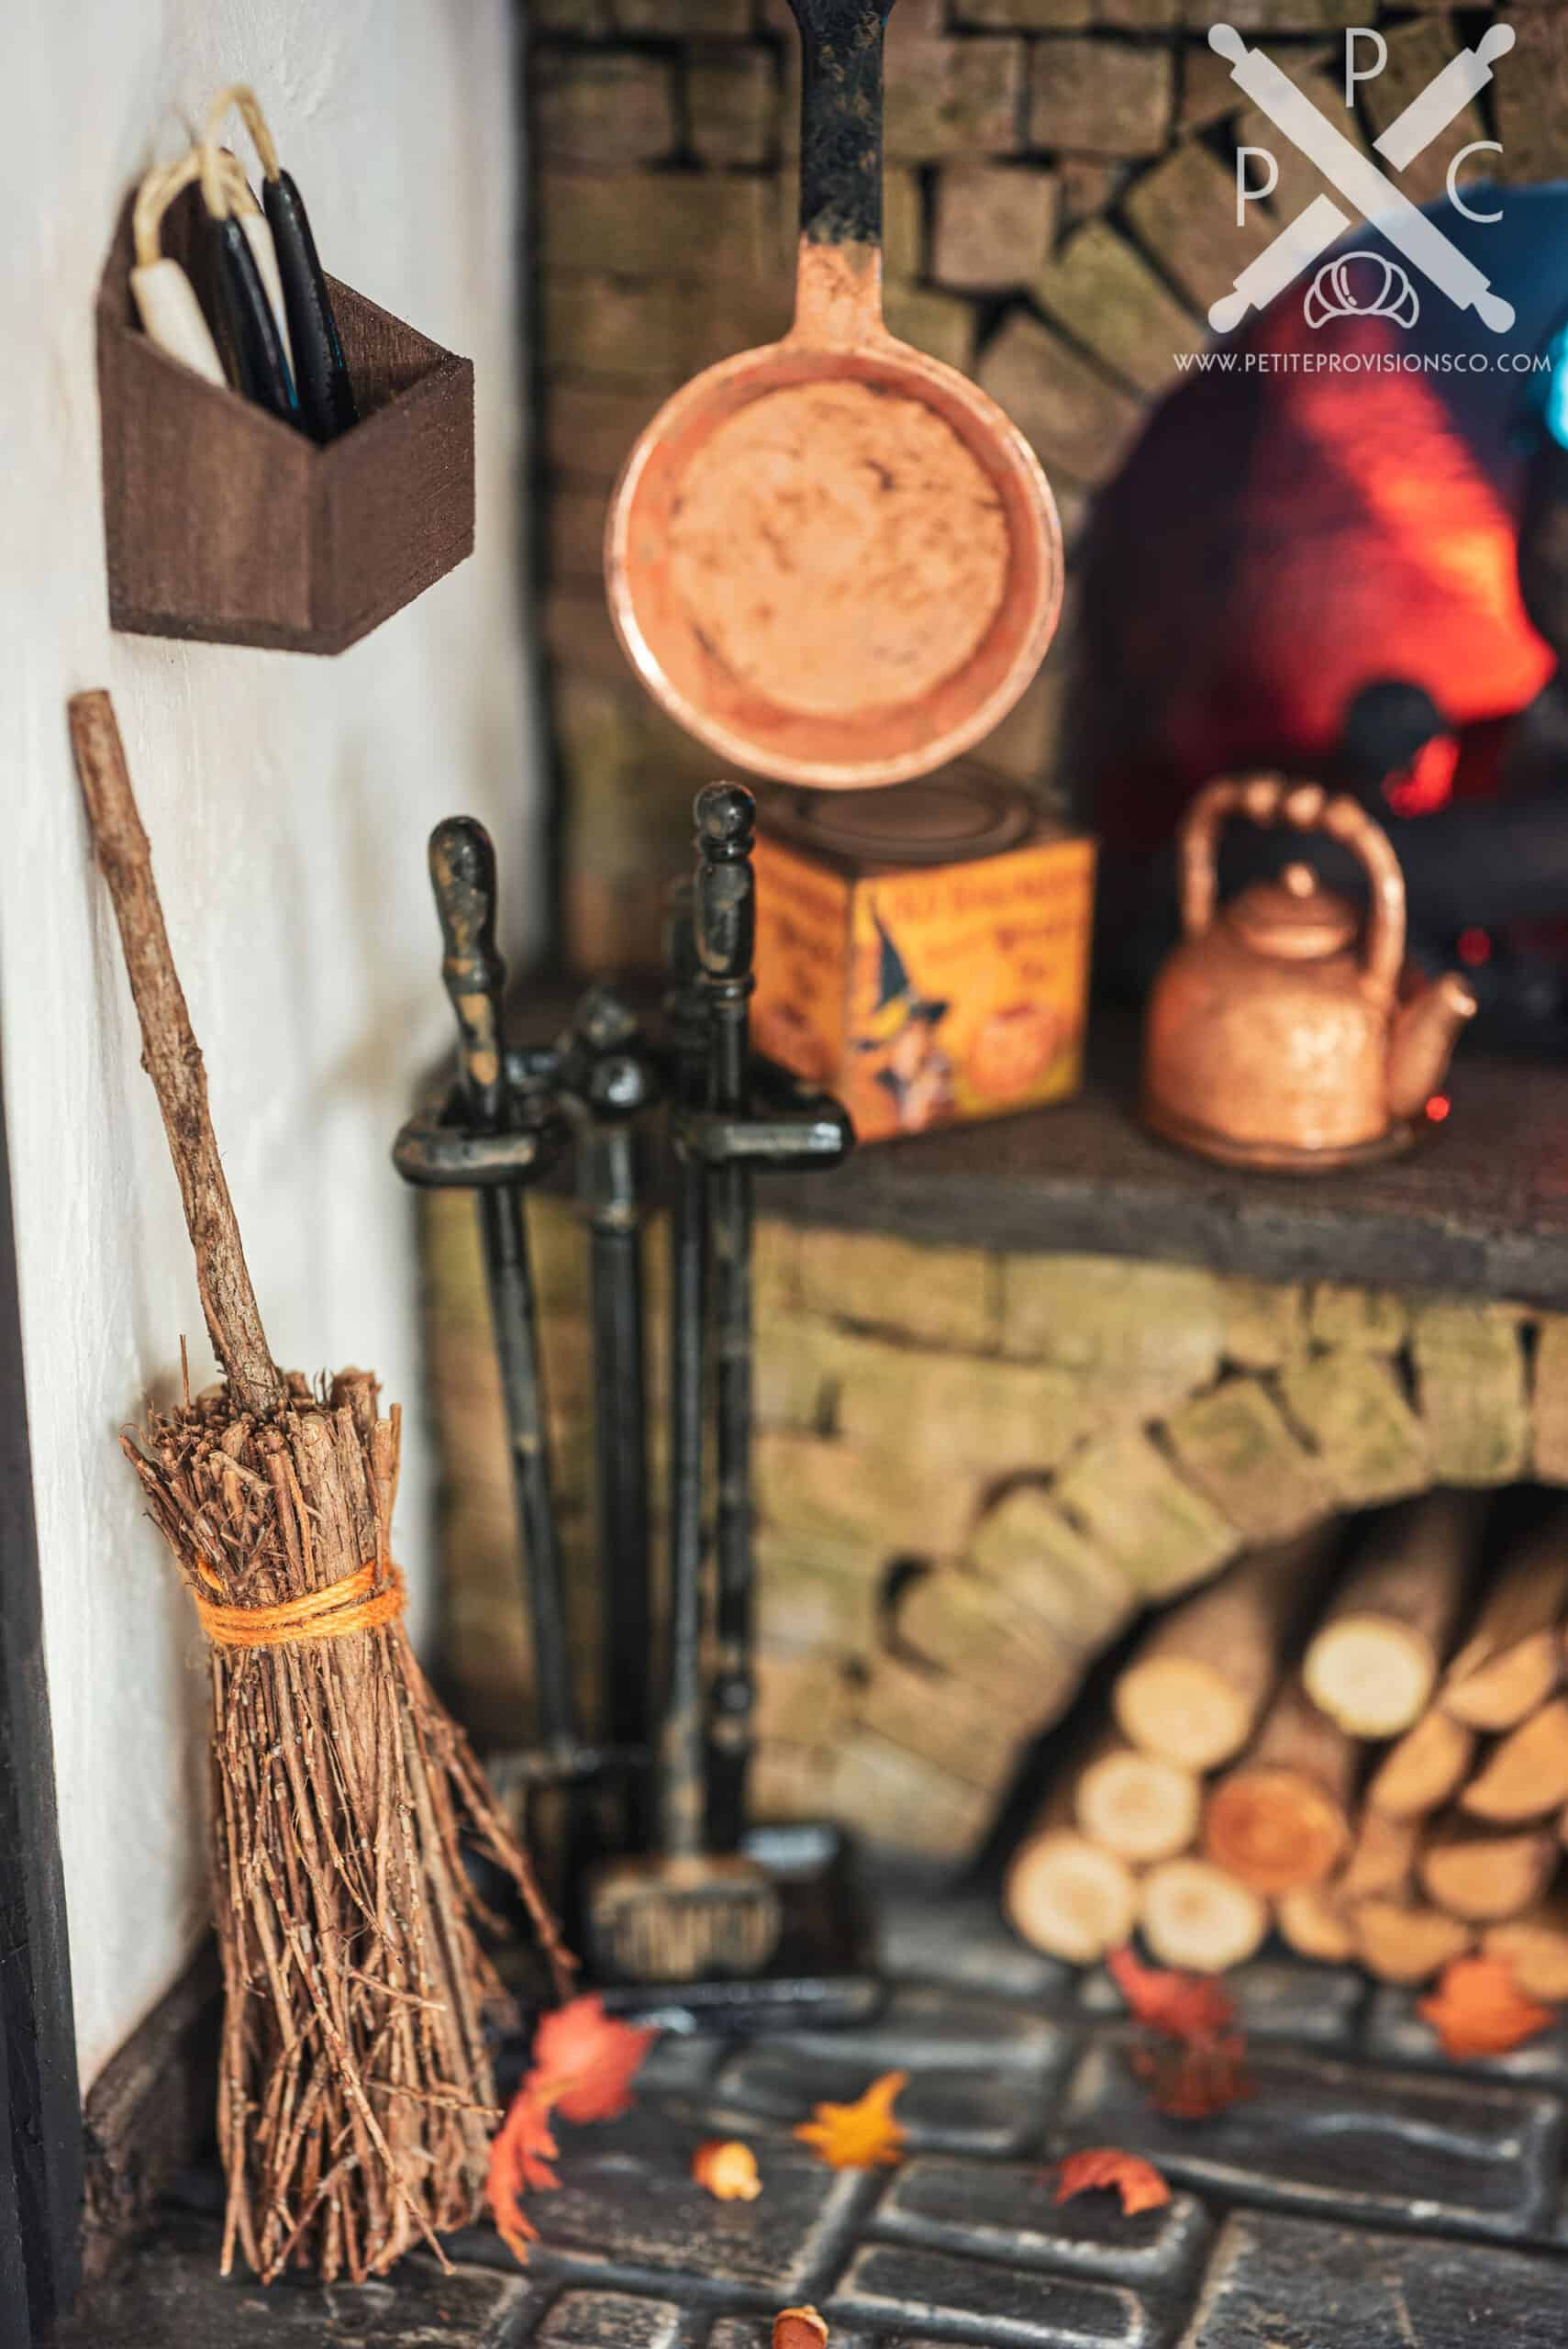 Broom, Autumn Leaves and Acorns in Witch's Kitchen Themed Roombox - Halloween at the Hag's Hearth - HBSMiniatures Halloween Challenge 2020